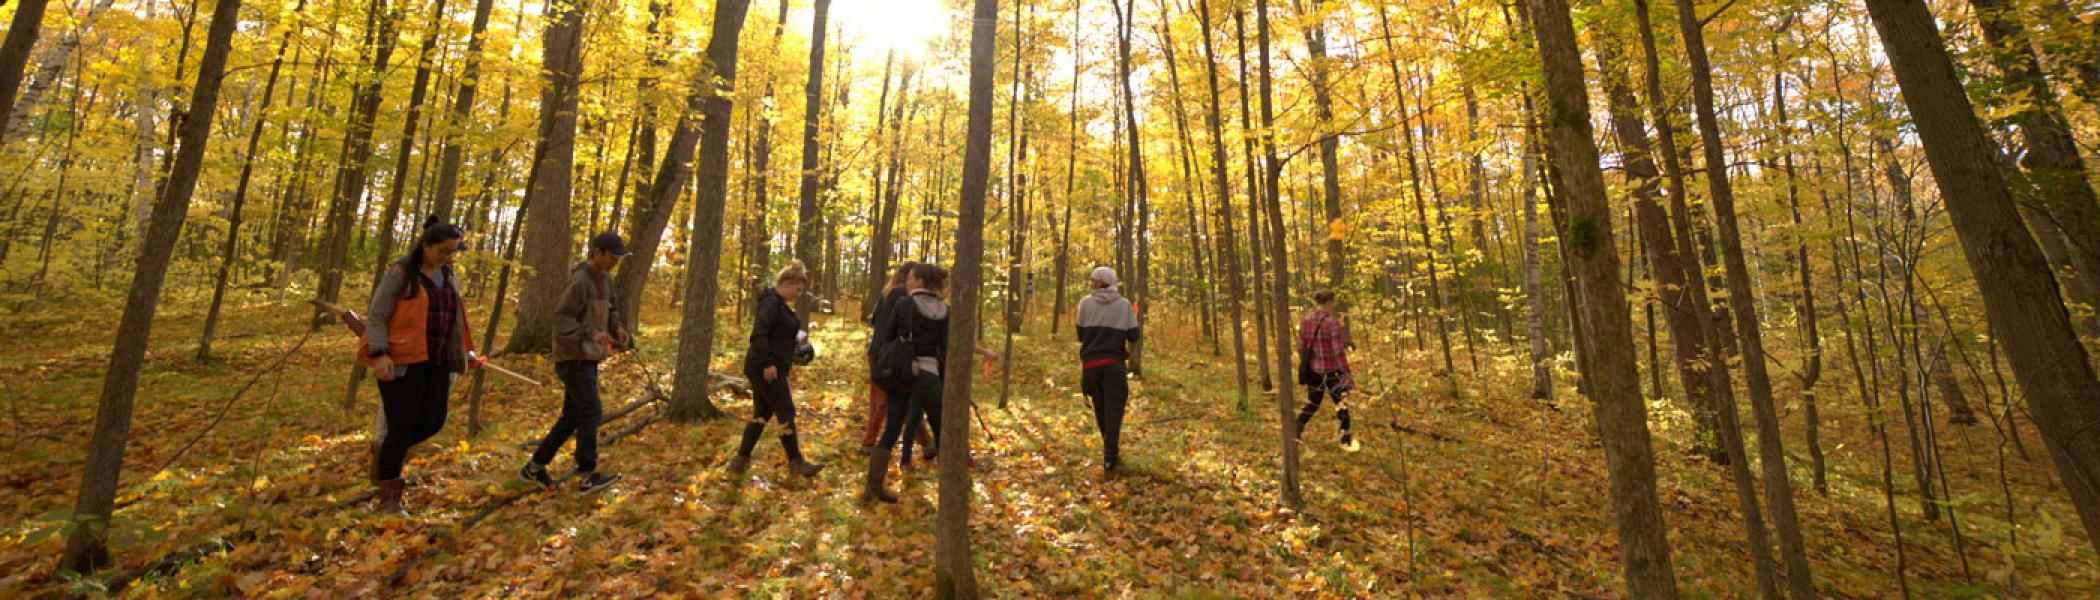 Sustainability M.A. students walking through a forest in the fall